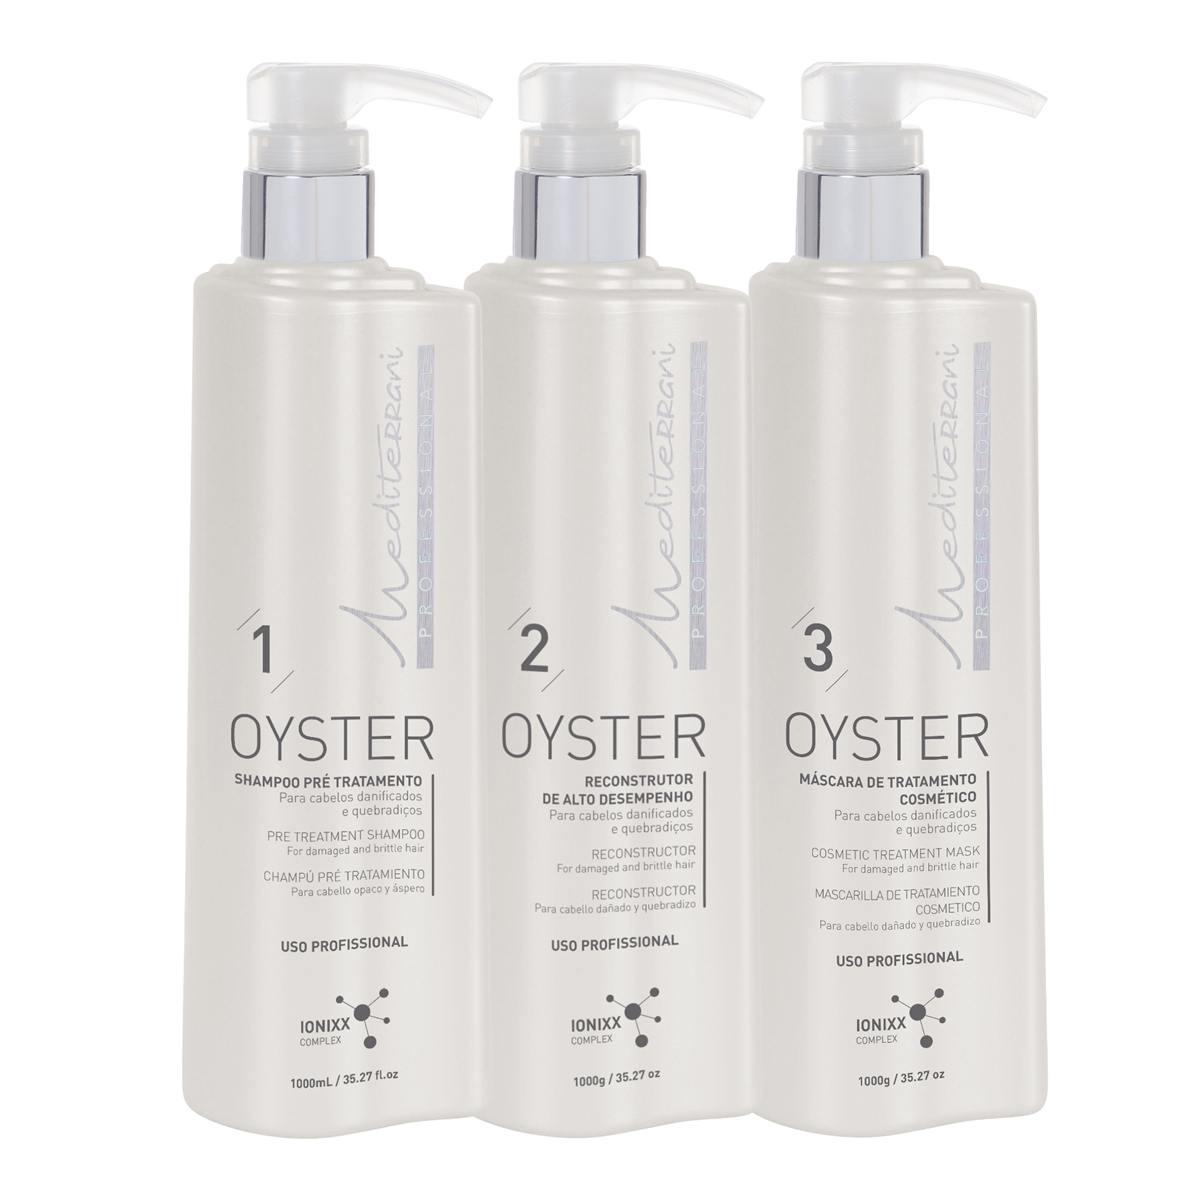 Kit Oyster Professional Reconstructor